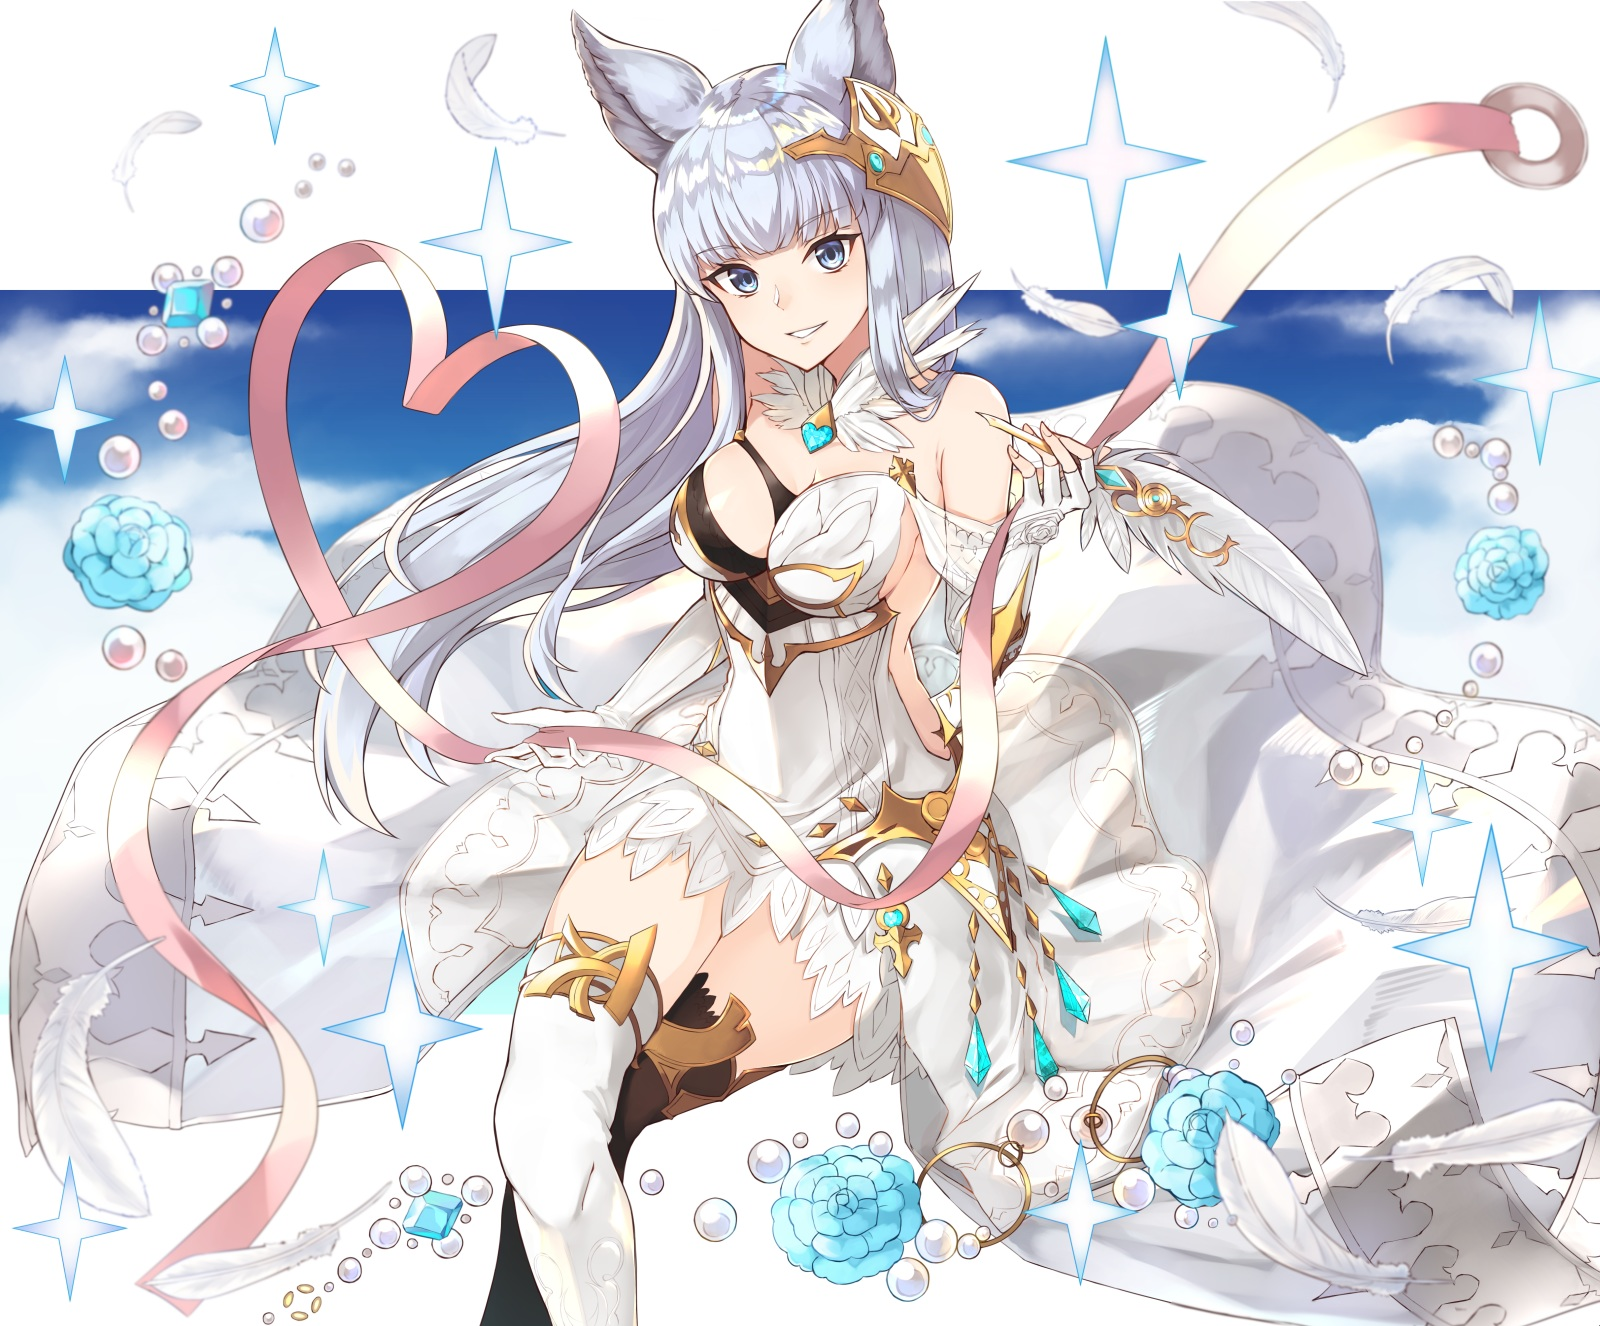 yande.re 366436 animal_ears dress gen_withillust granblue_fantasy korwa thighhighs.jpg